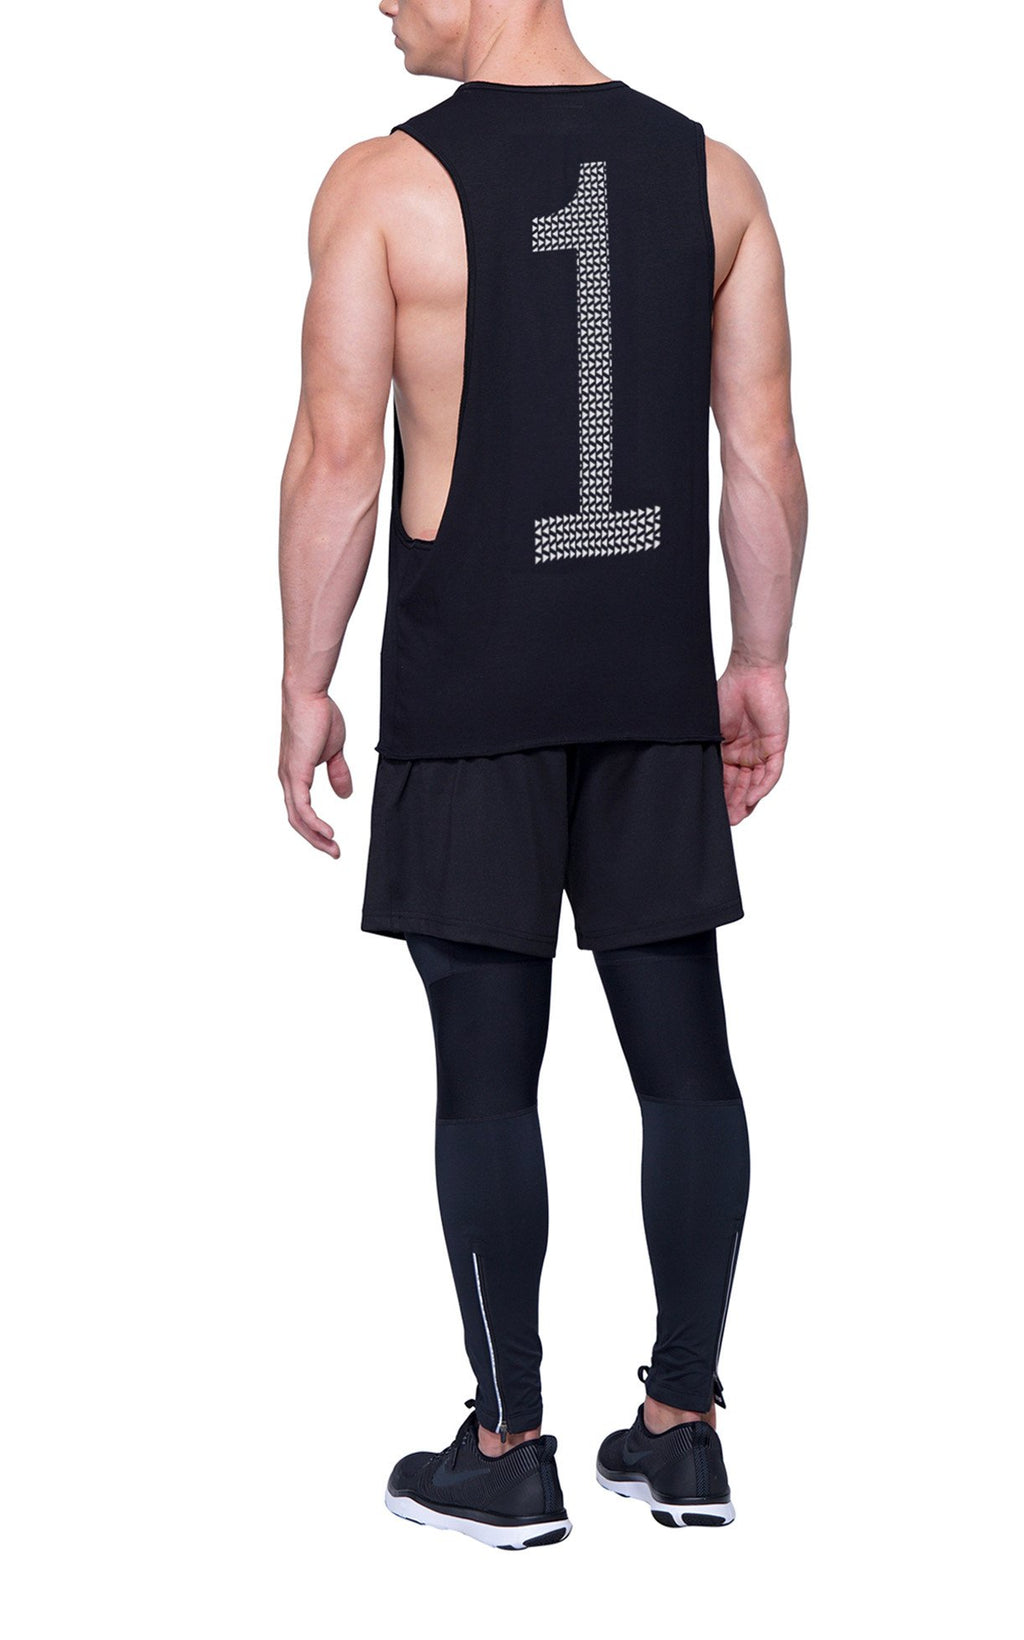 Triangle Pattern Number 1 Gym Cut-Off | Black